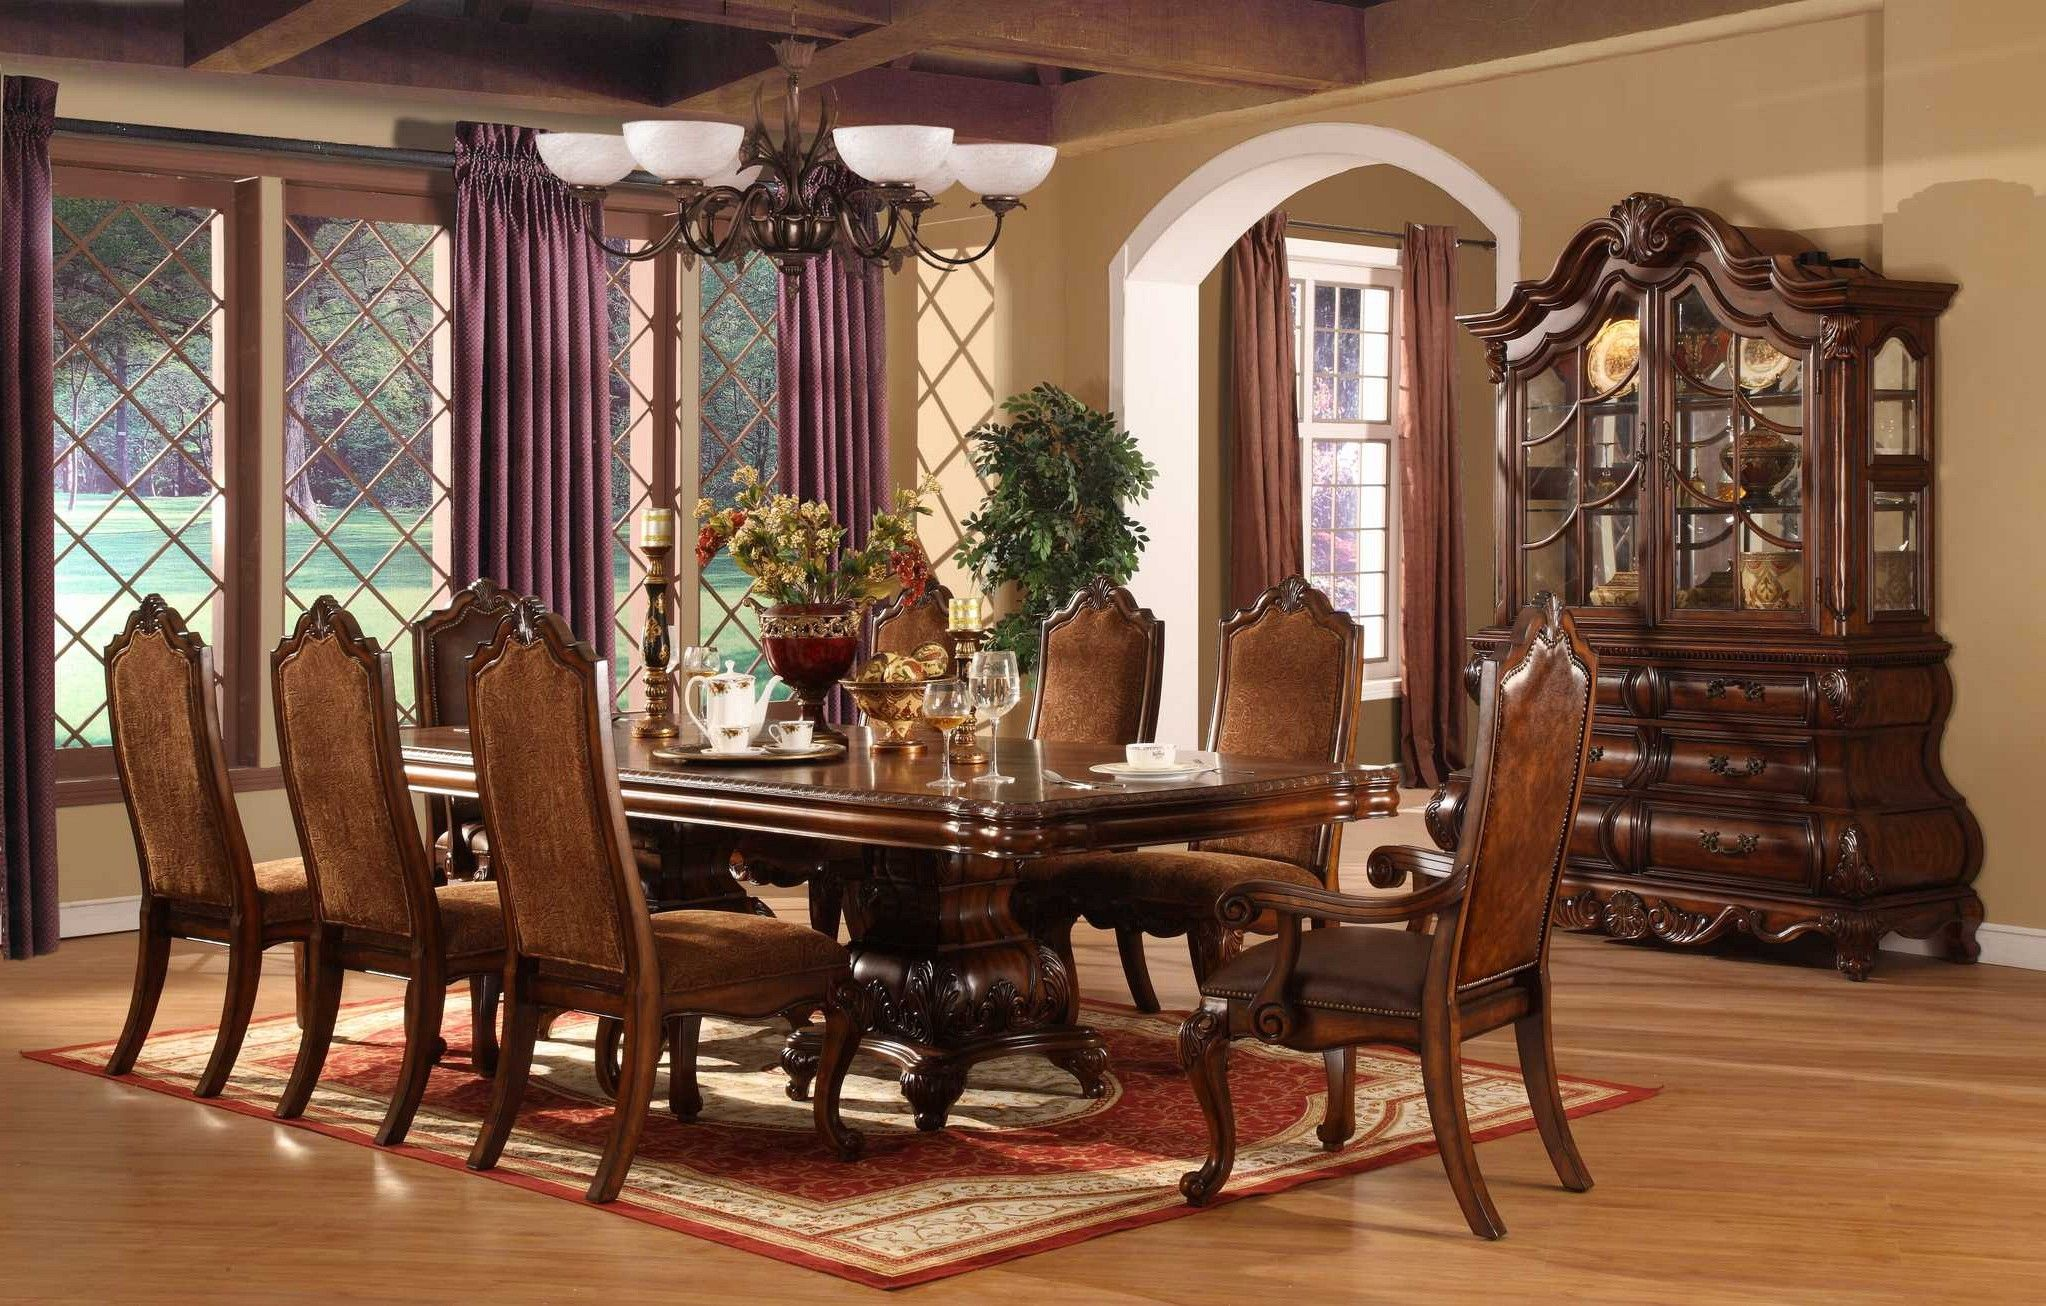 Décor For Formal Dining Room Designs Decor Around The World Elegant Dining Room Wood Living Room Decor White Living Room Decor